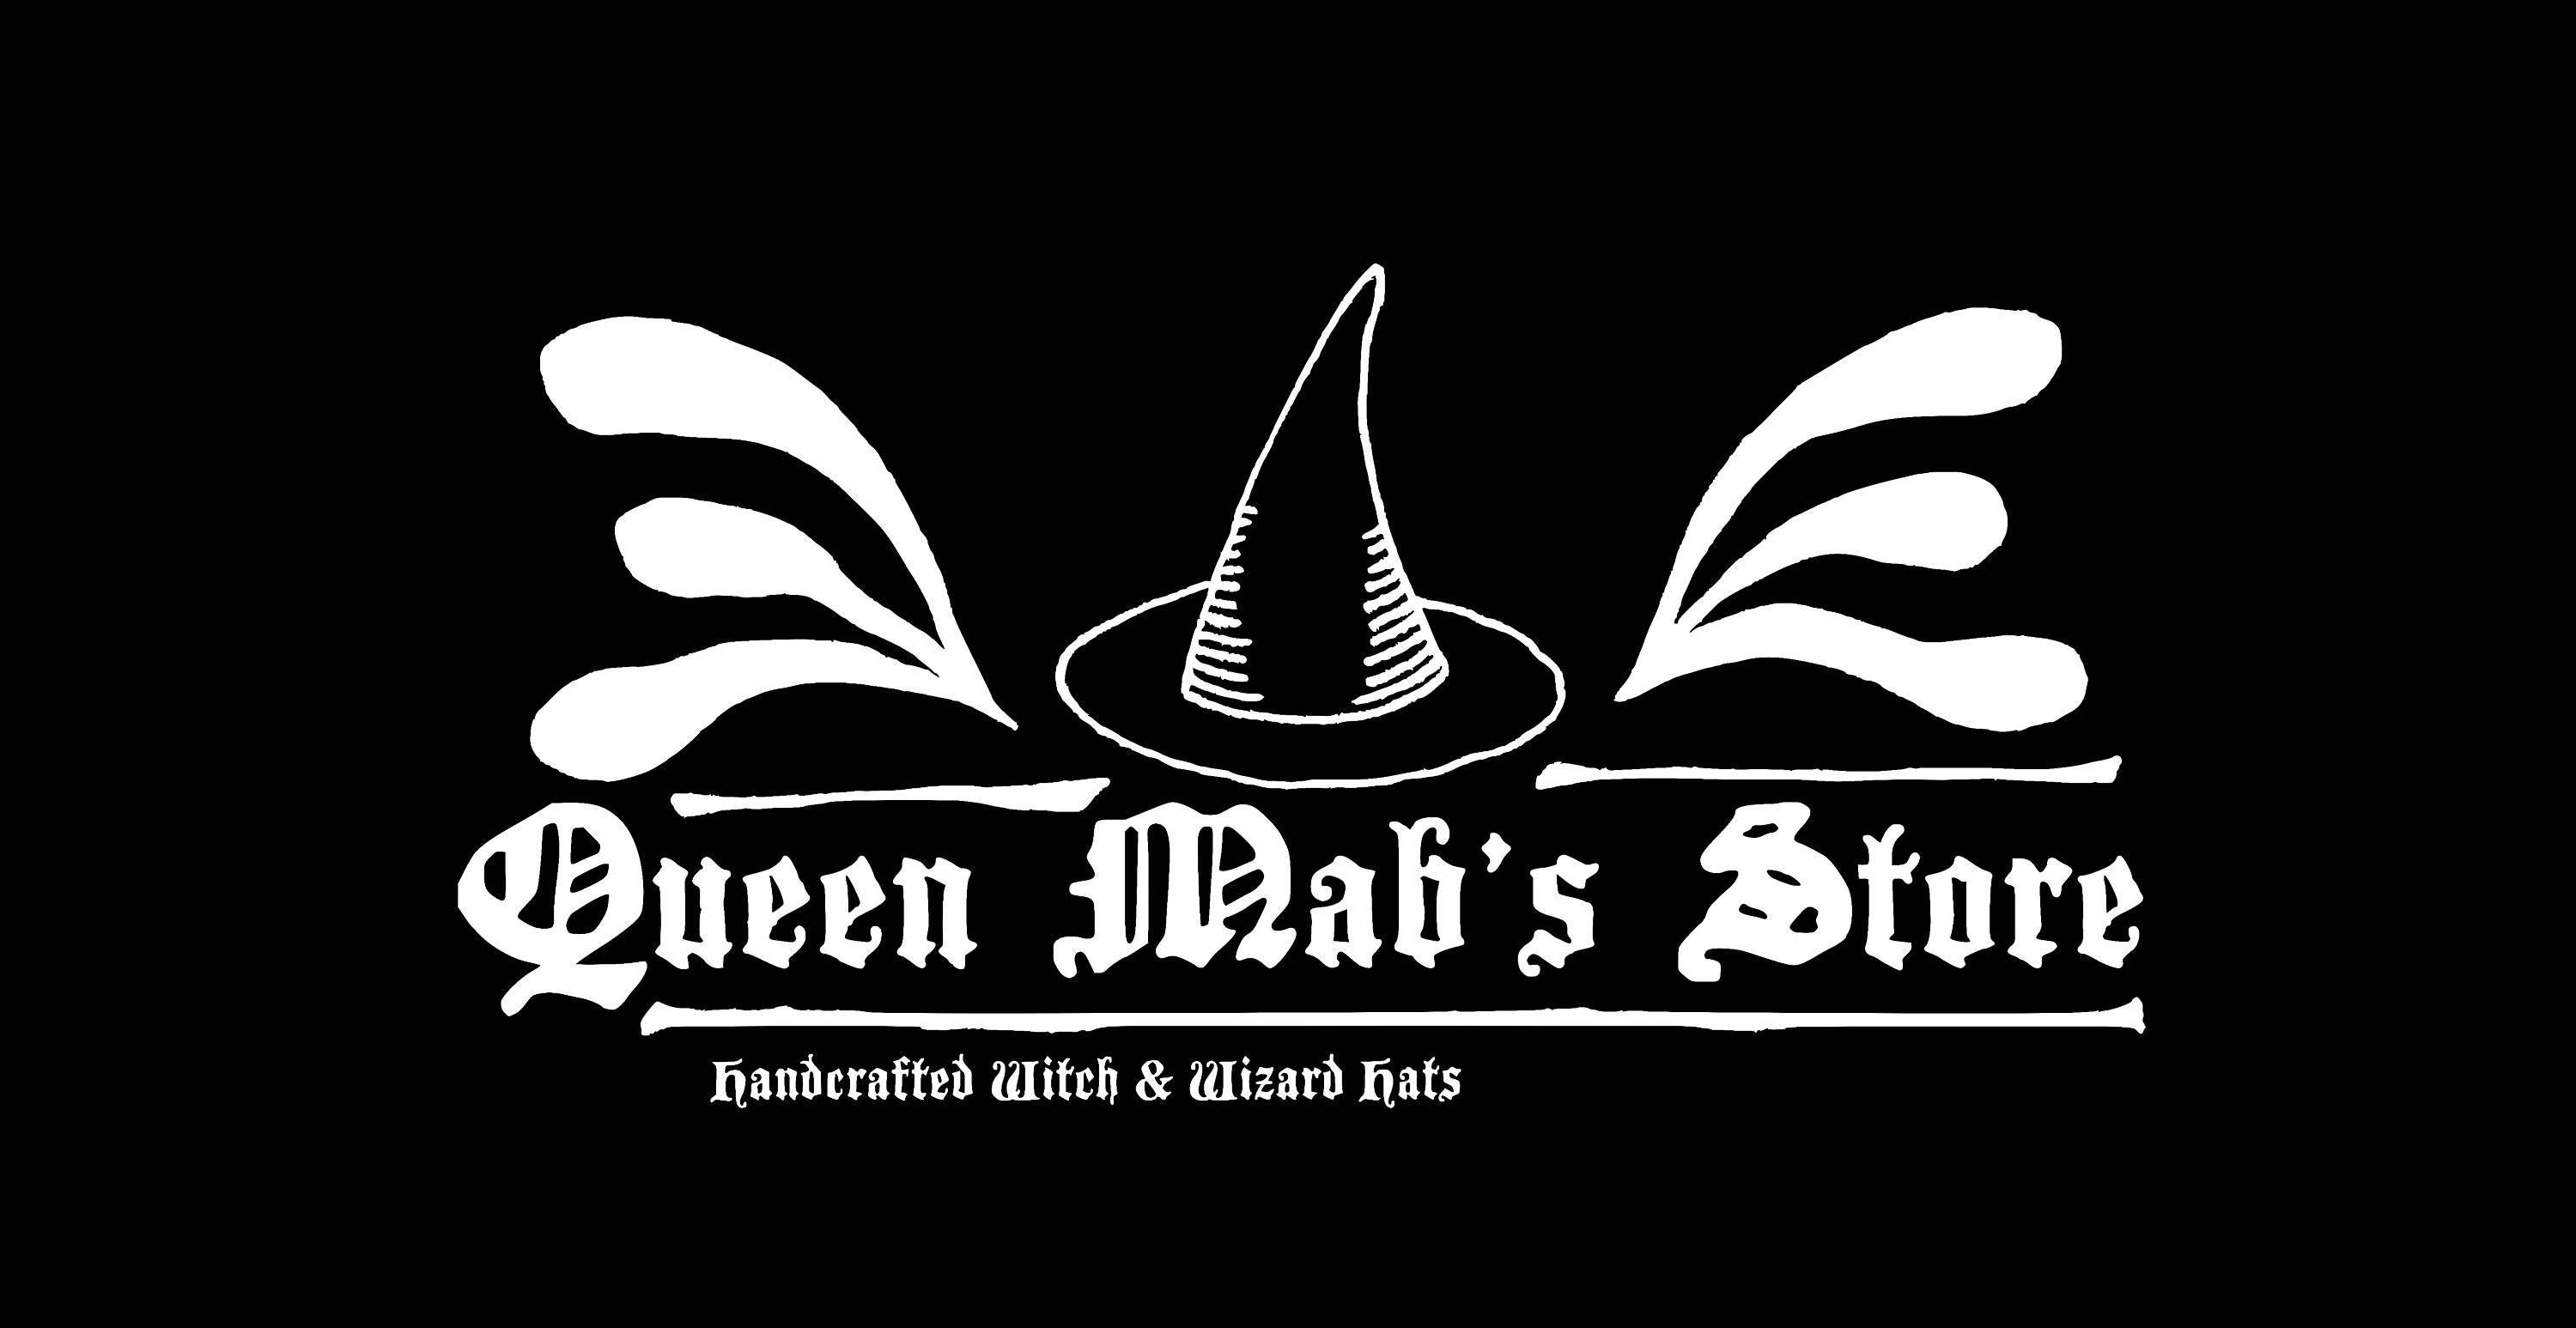 Blog - Queen Mab's Store